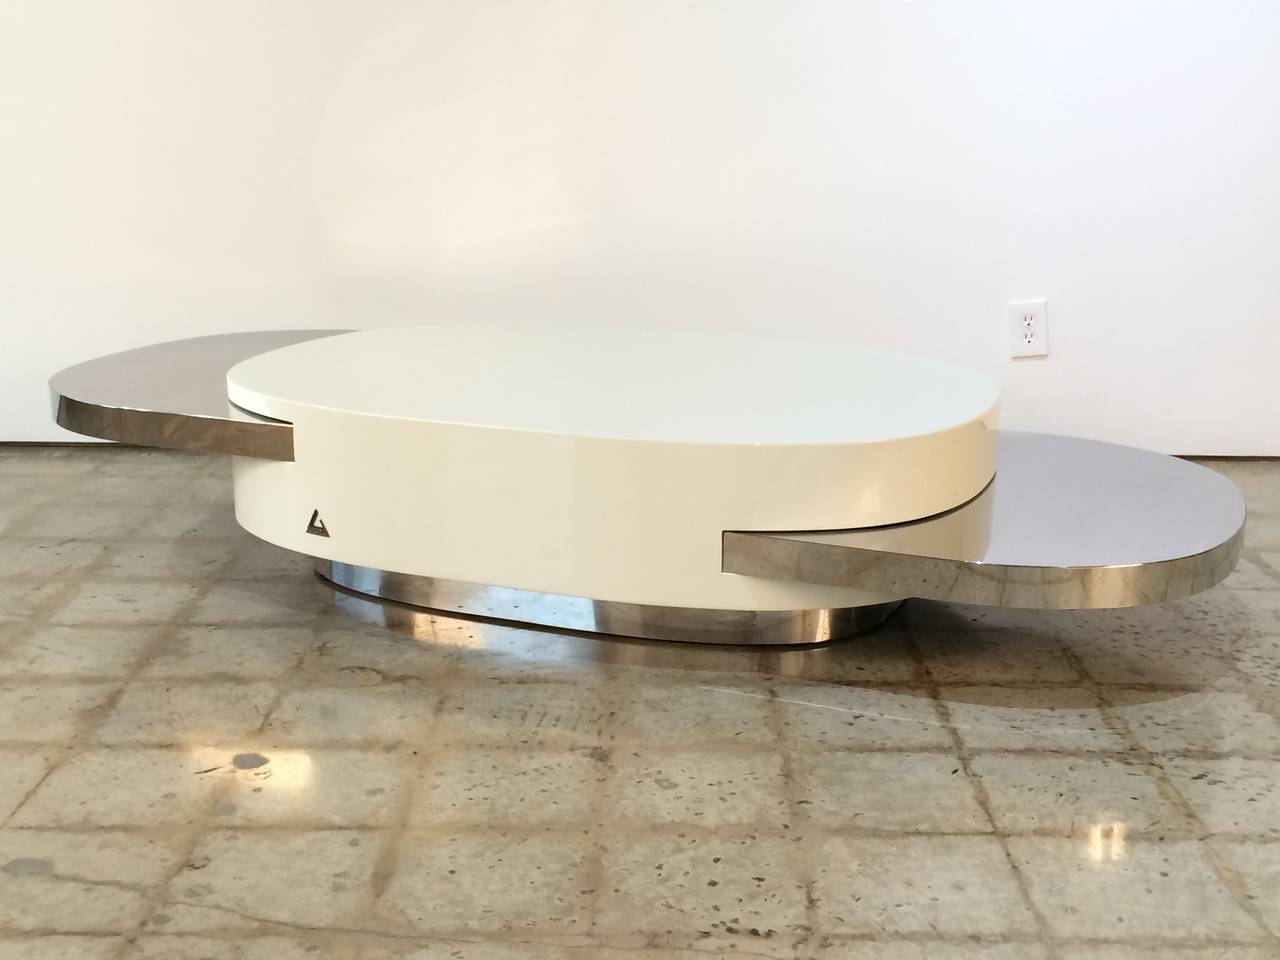 Rare white lacquer and mirror polished stainless steel Ellisse coffee table by Gabriella Crespi with two extendable slide out trays.  Table is 51.5